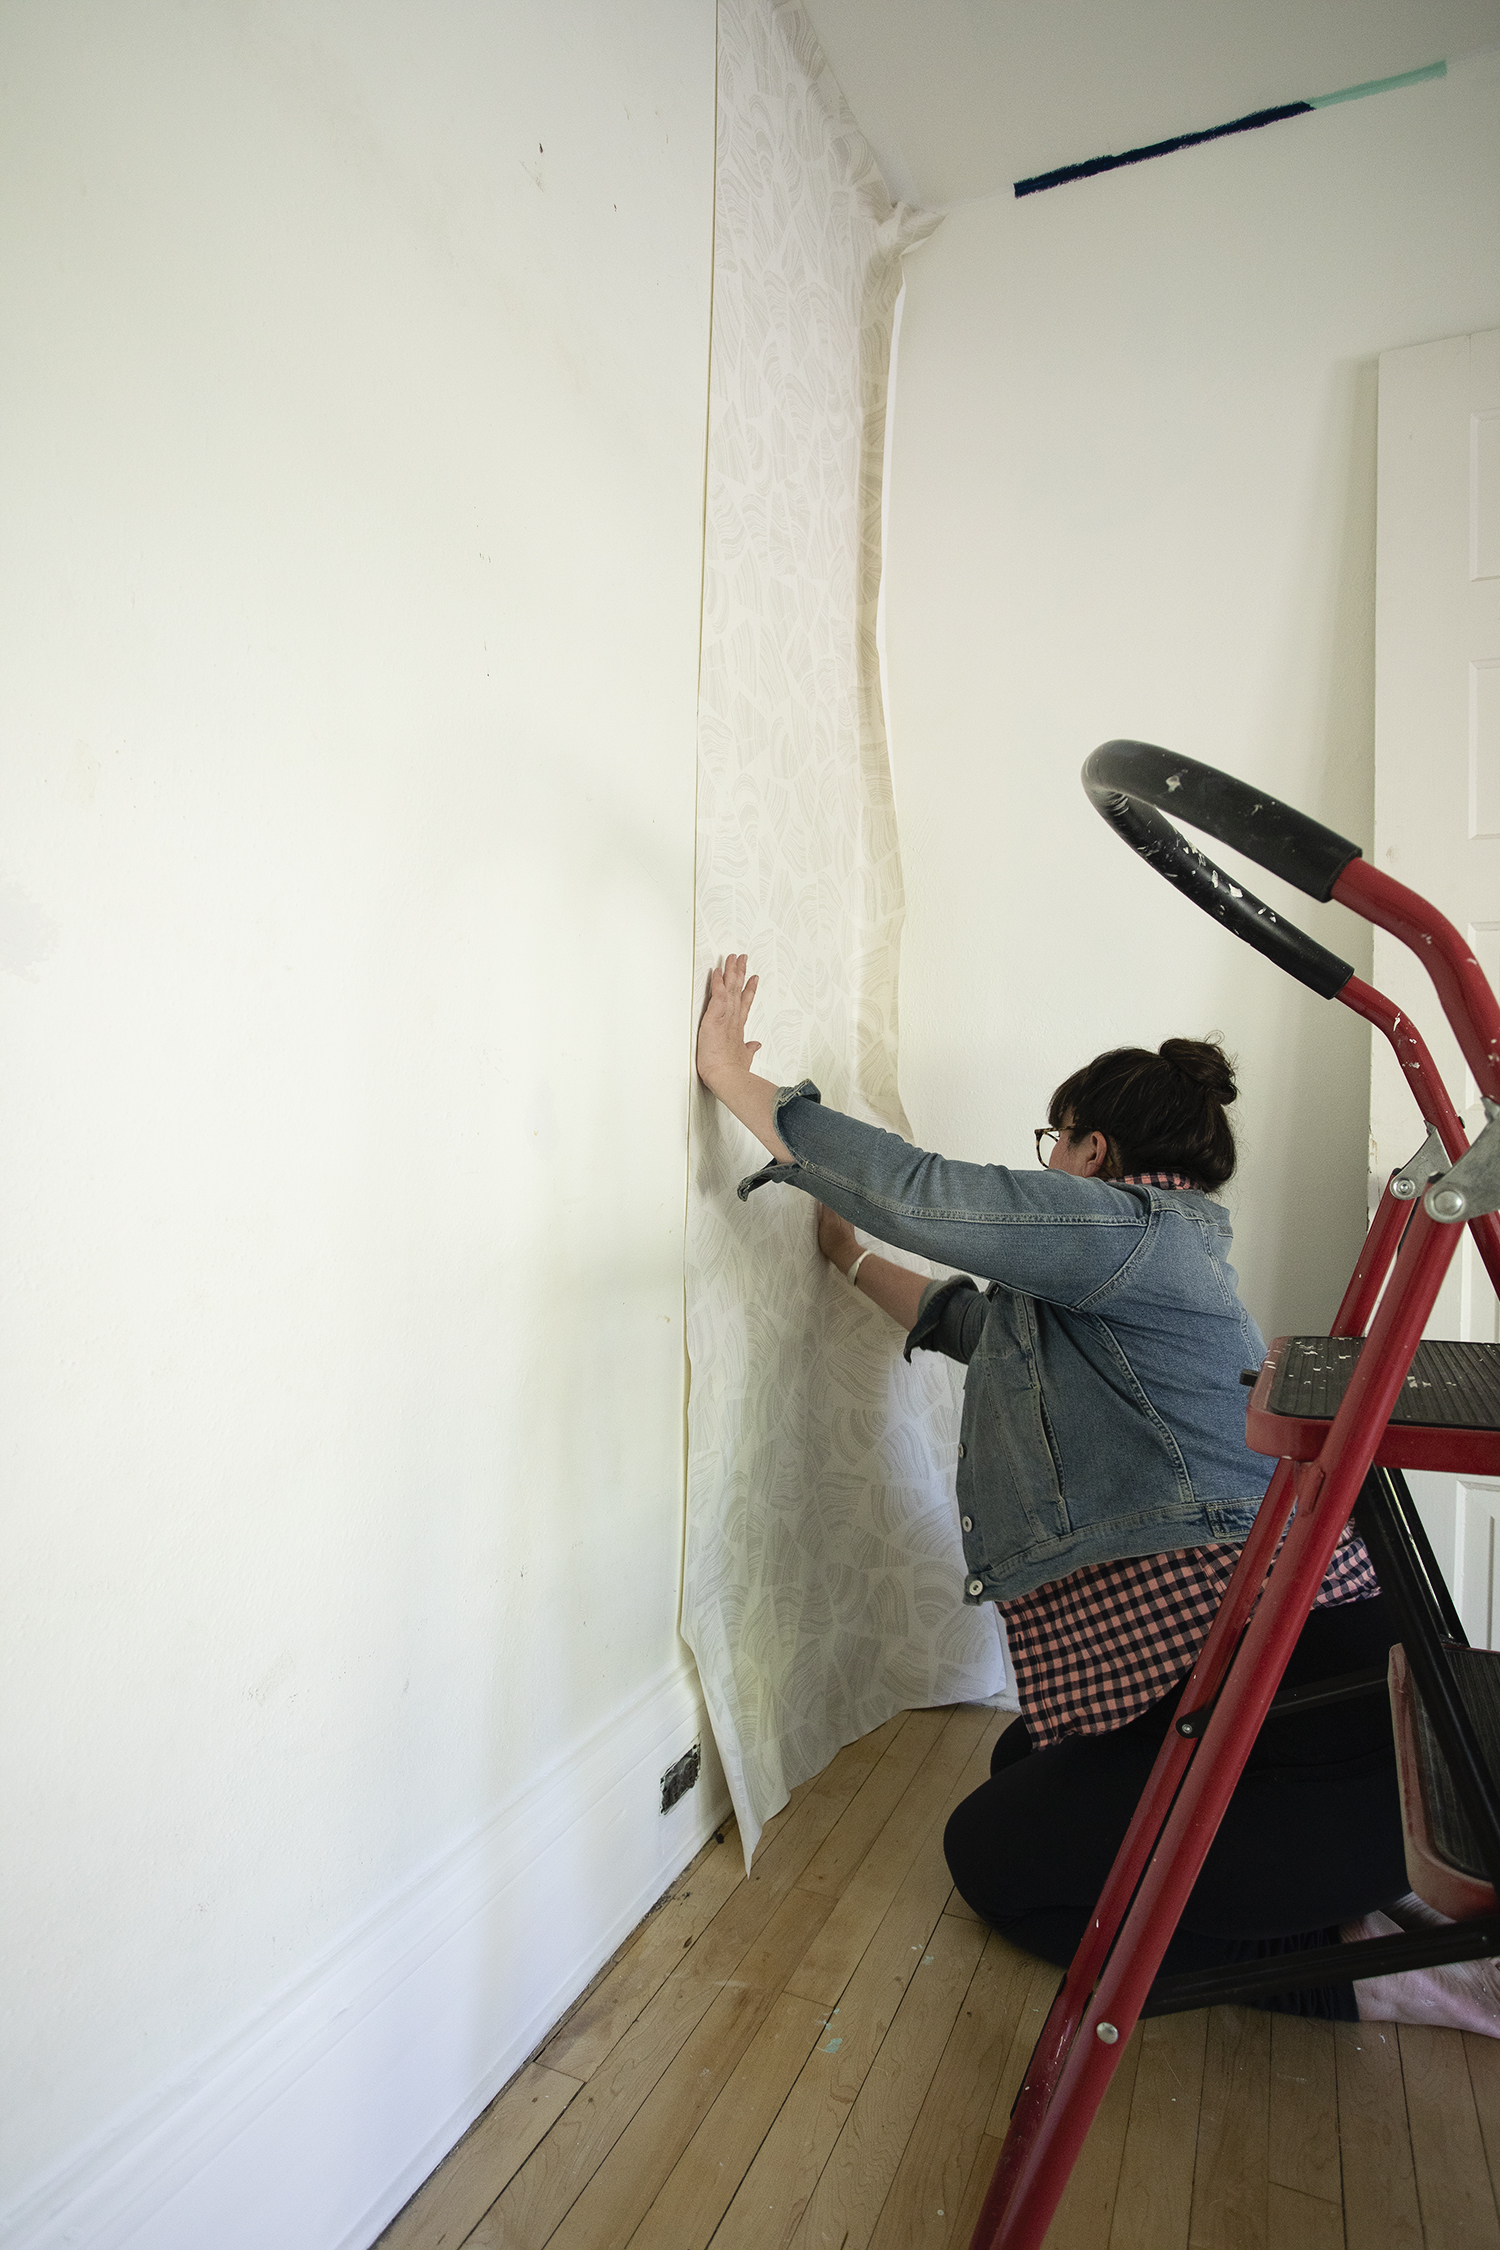 Hang First Strip of Wallpaper on Plumb Line